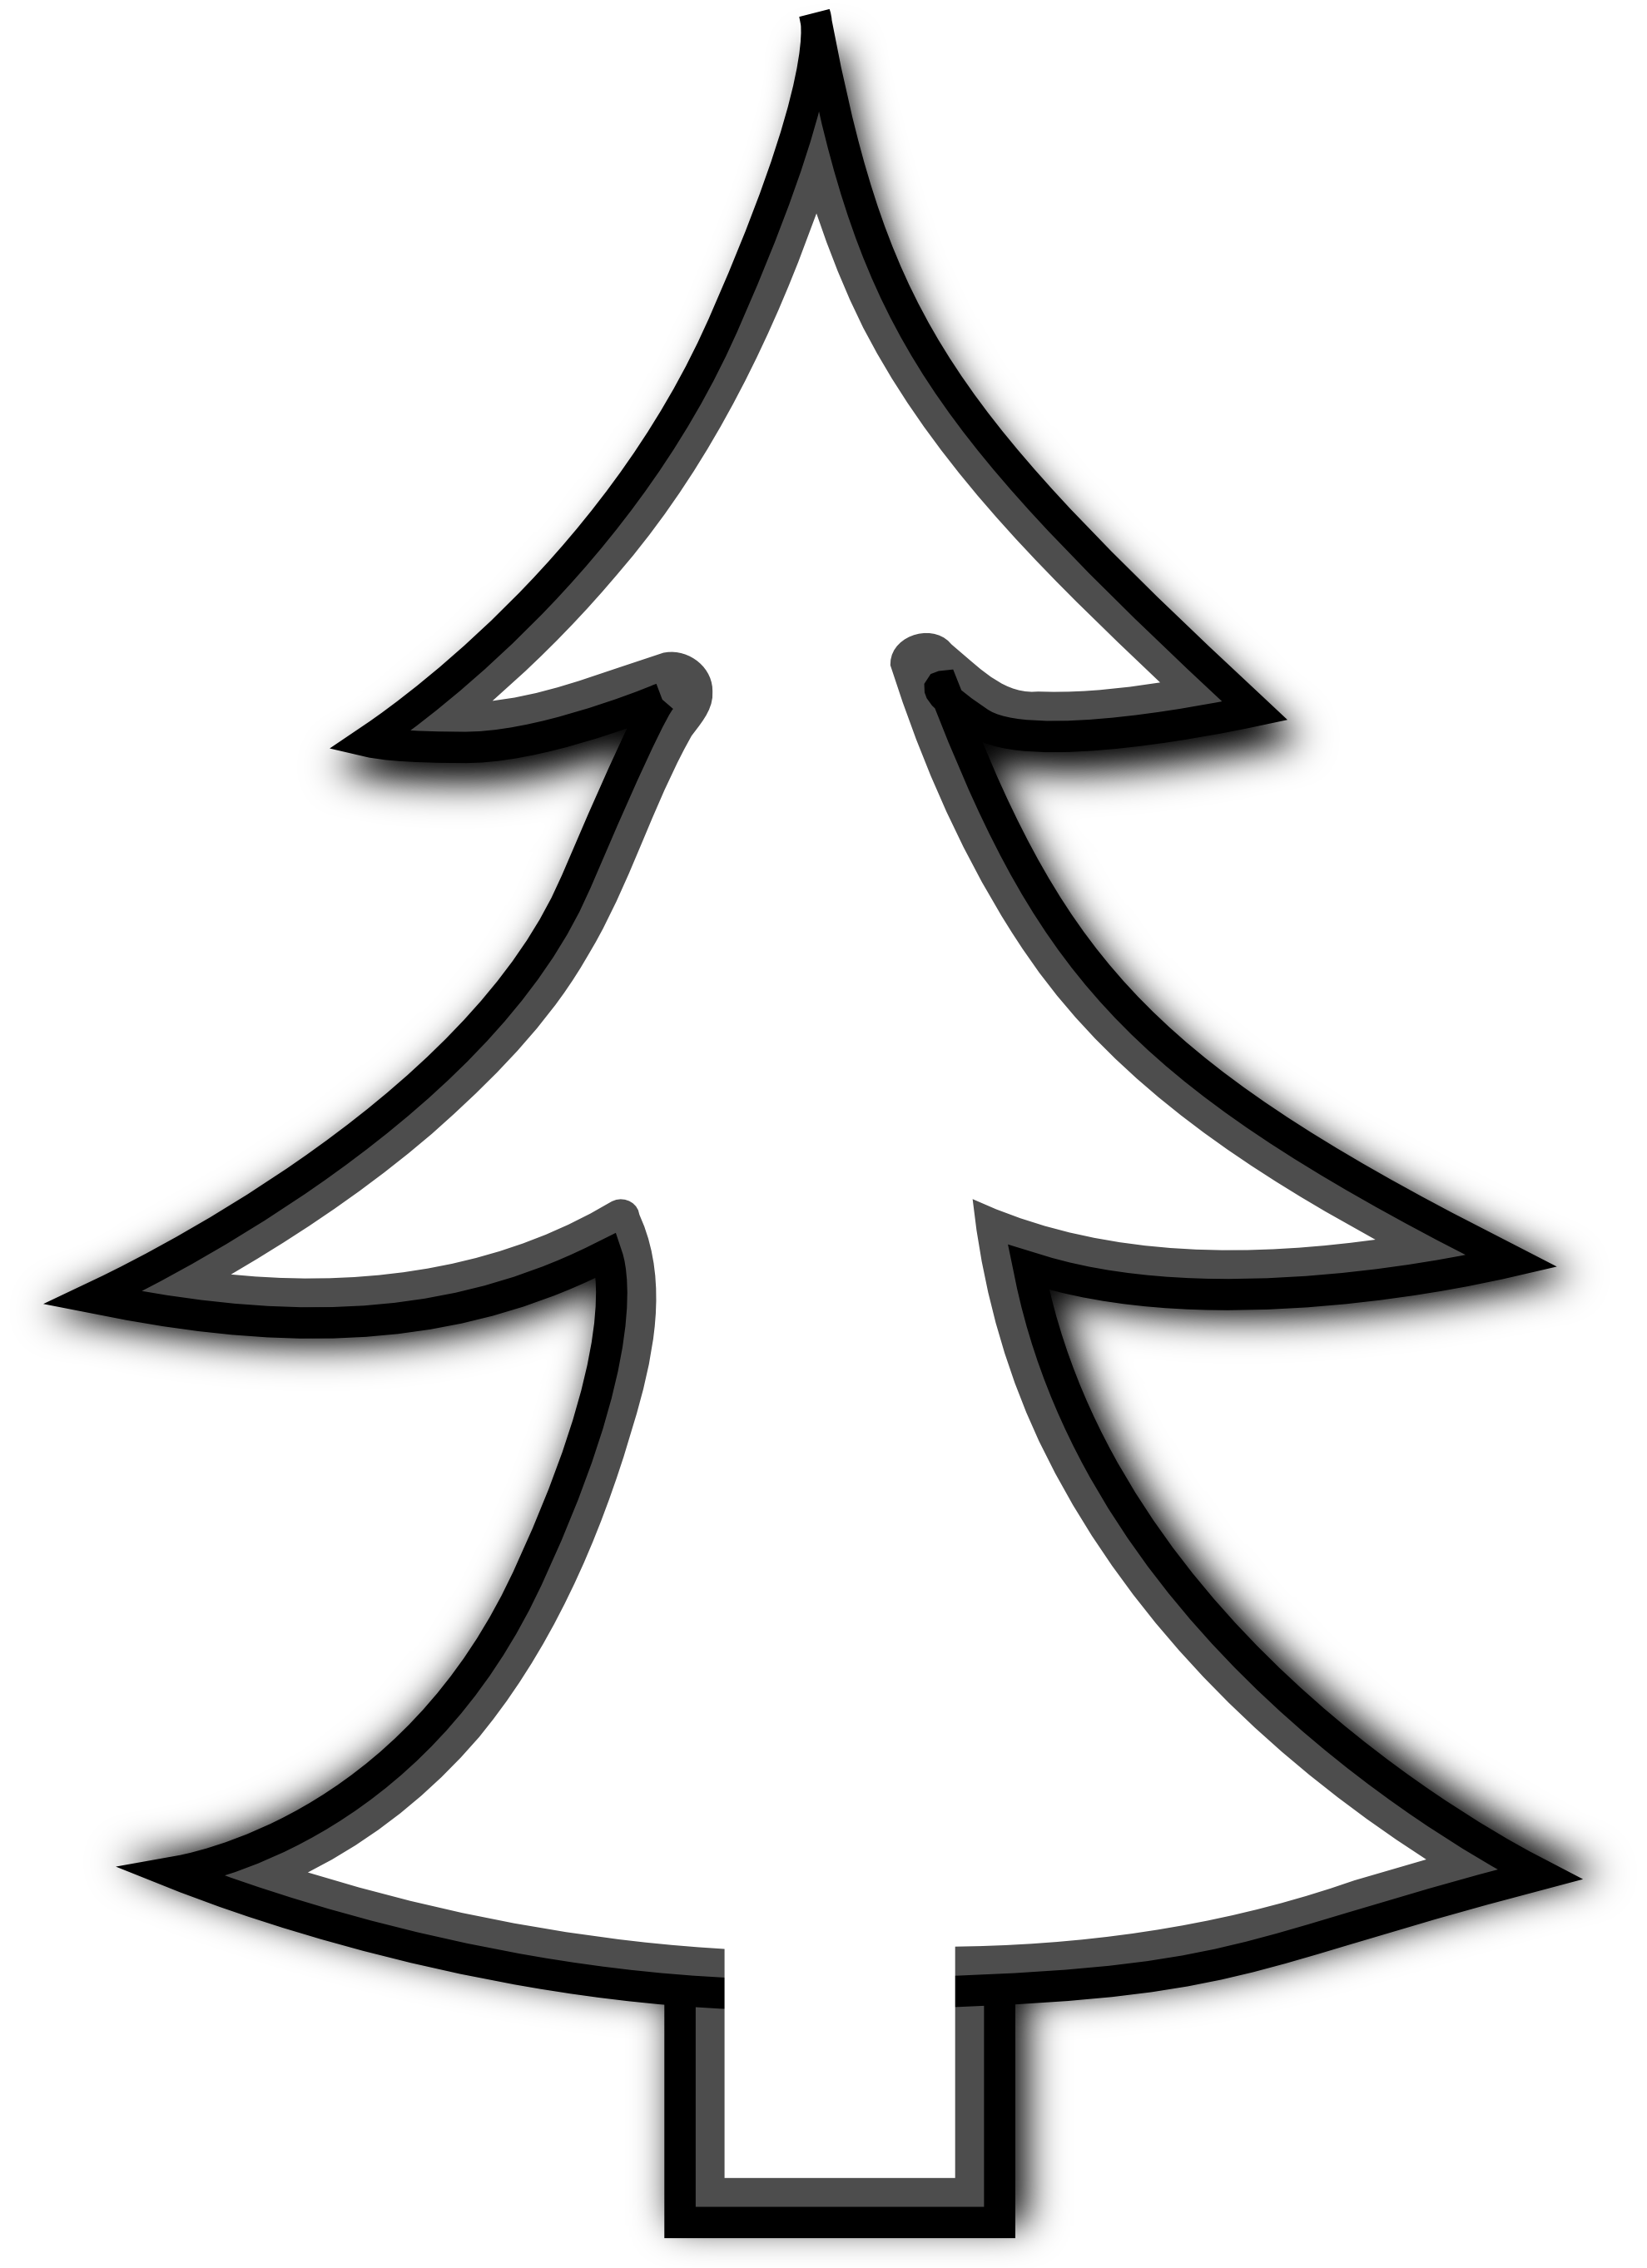 Clipart Christmas Tree Outline | Clipart Panda - Free ...